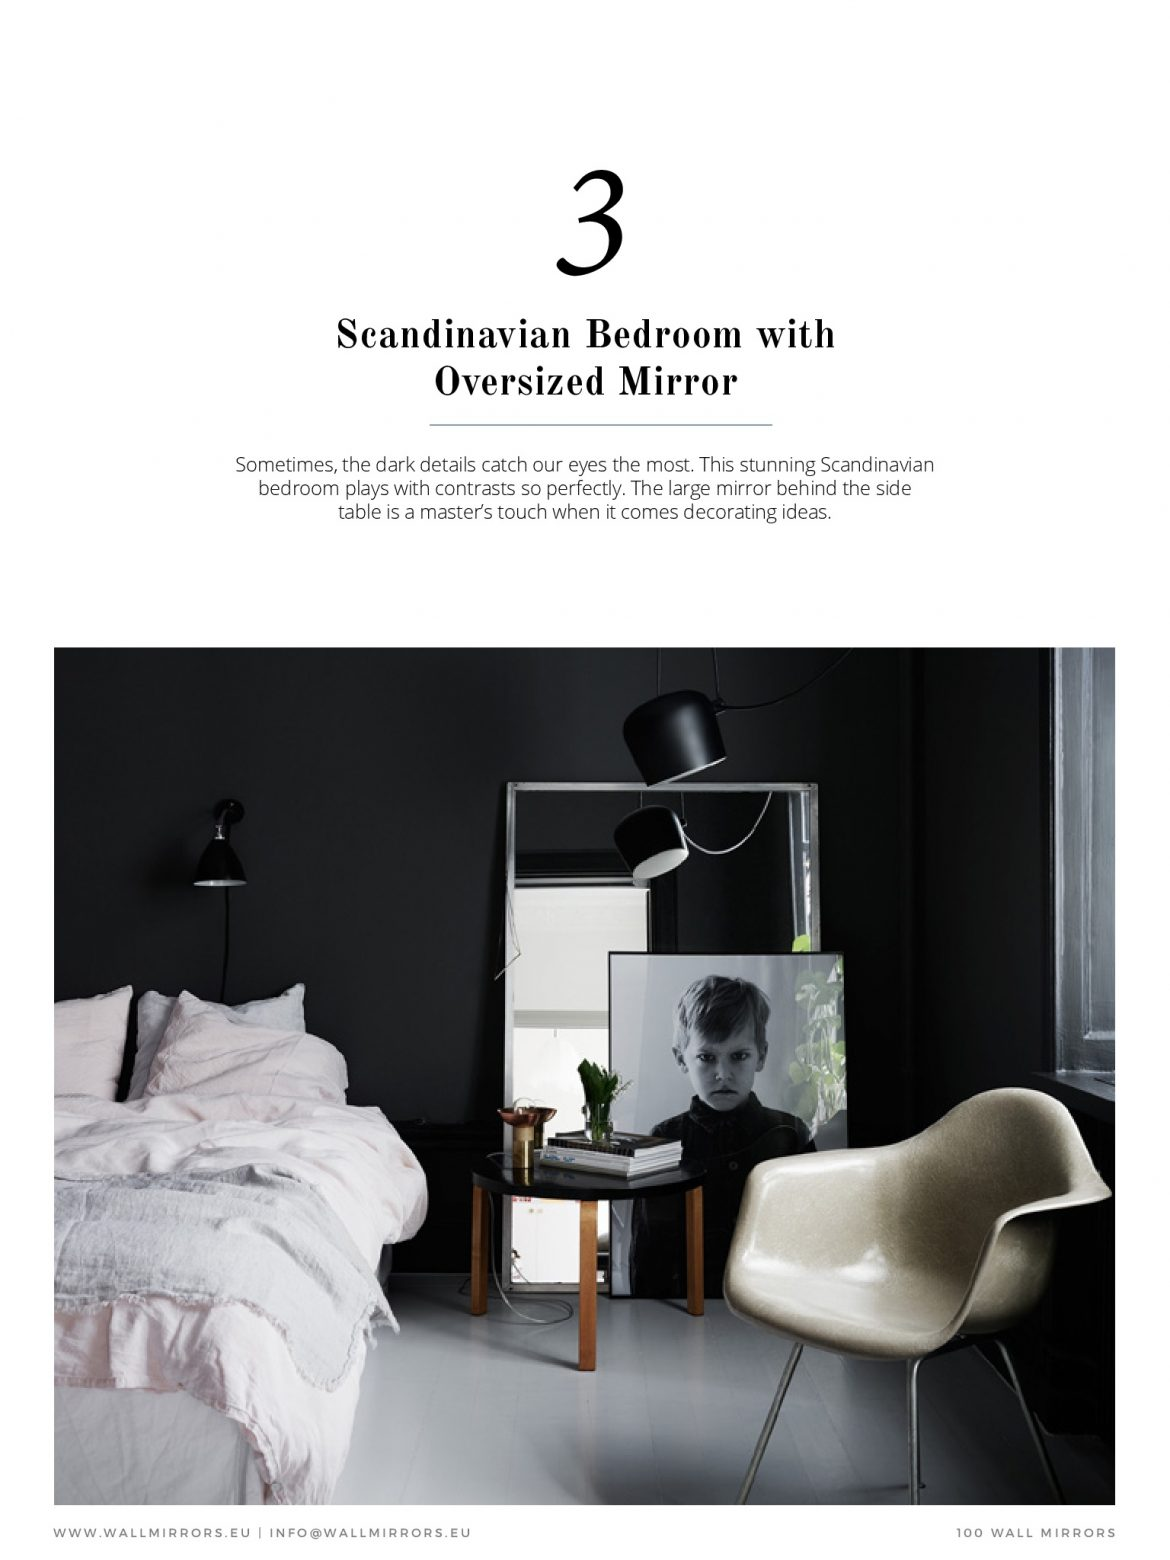 Discover The Unique 100 Must See Wall Mirrors Ebook